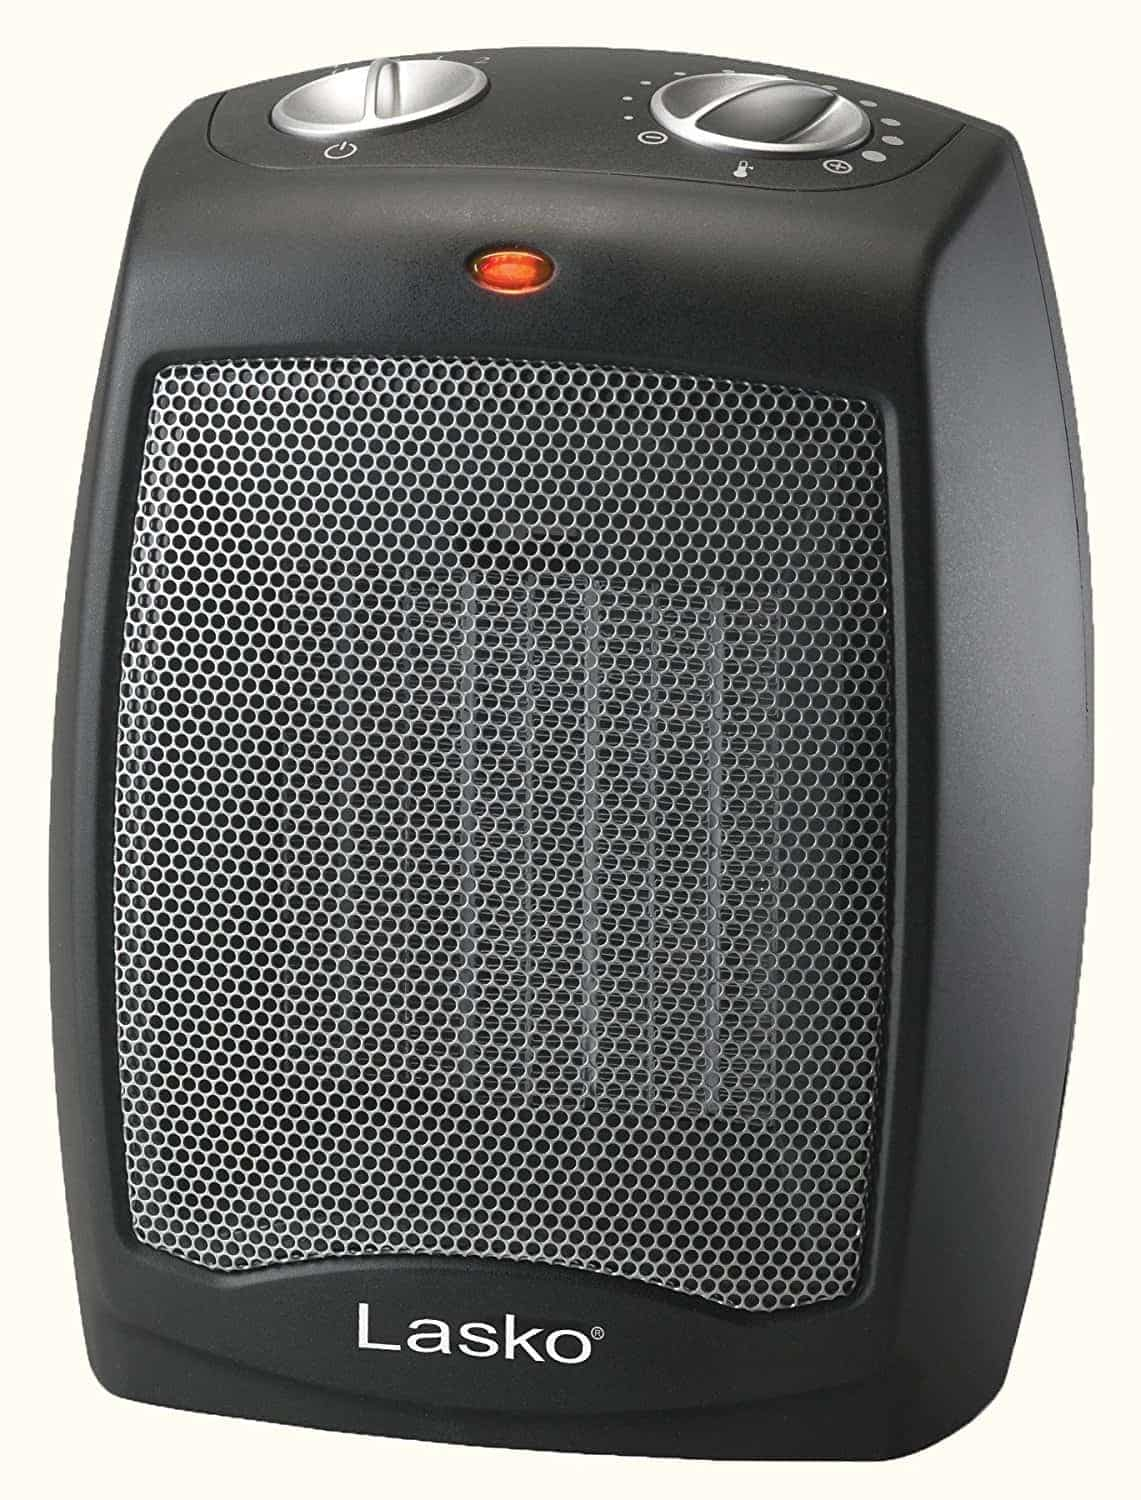 Lasko CD09250 Ceramic Heater with Adjustable Thermostat Tabletop Or Under-Desk